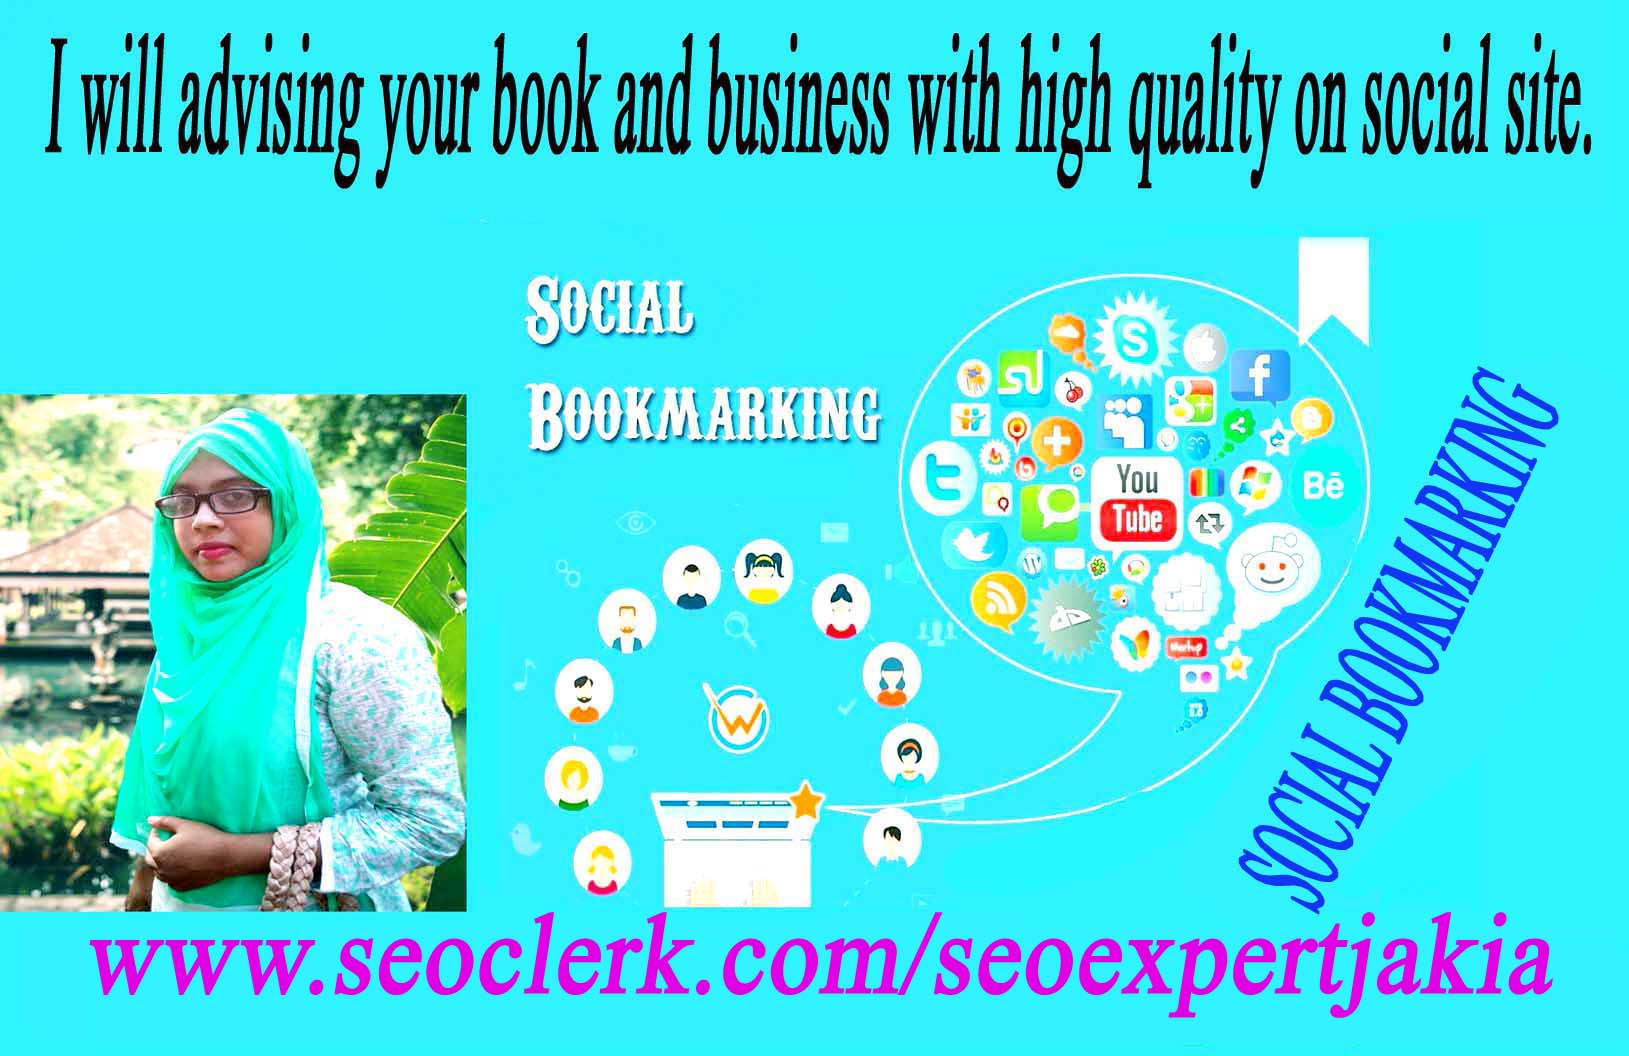 I will advising your book and business 20 with high quality on social site